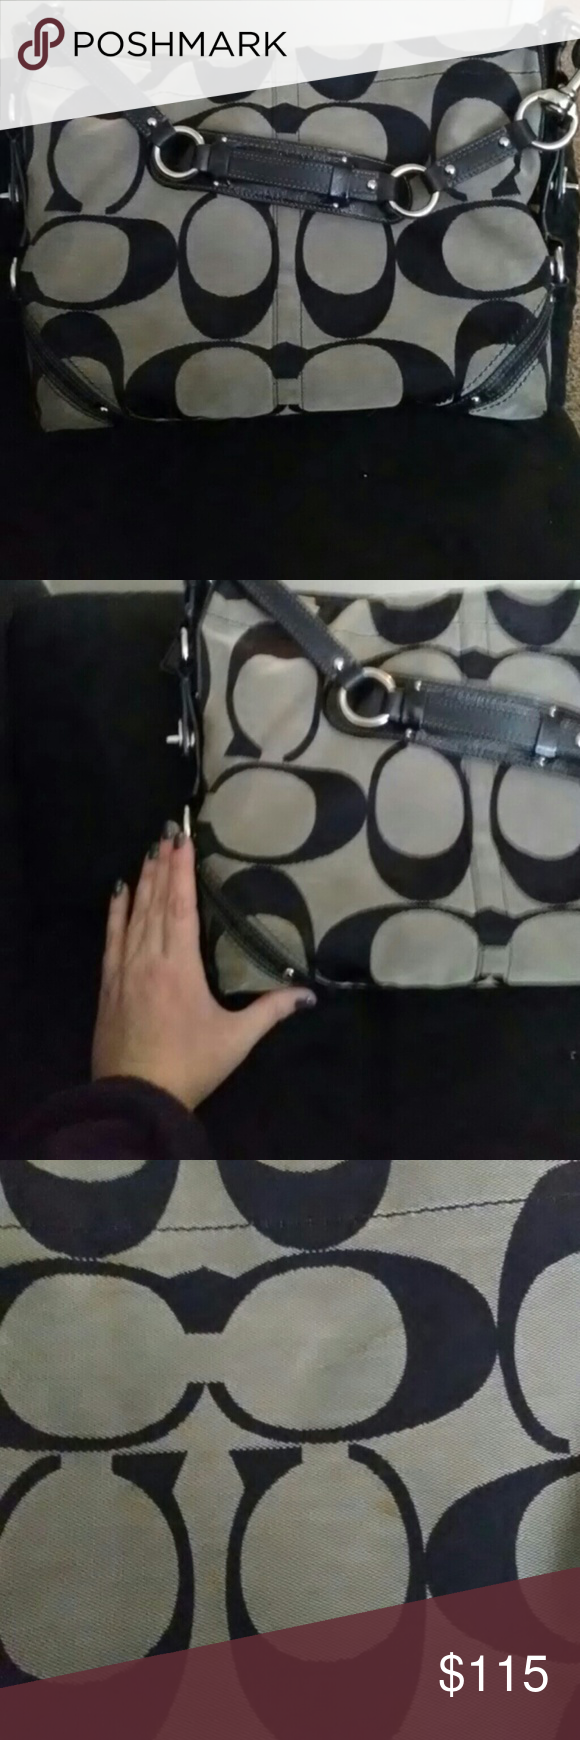 Large coach purse Minor flaws as shown in pictures. Could just use a little spot clean. Coach Bags Shoulder Bags